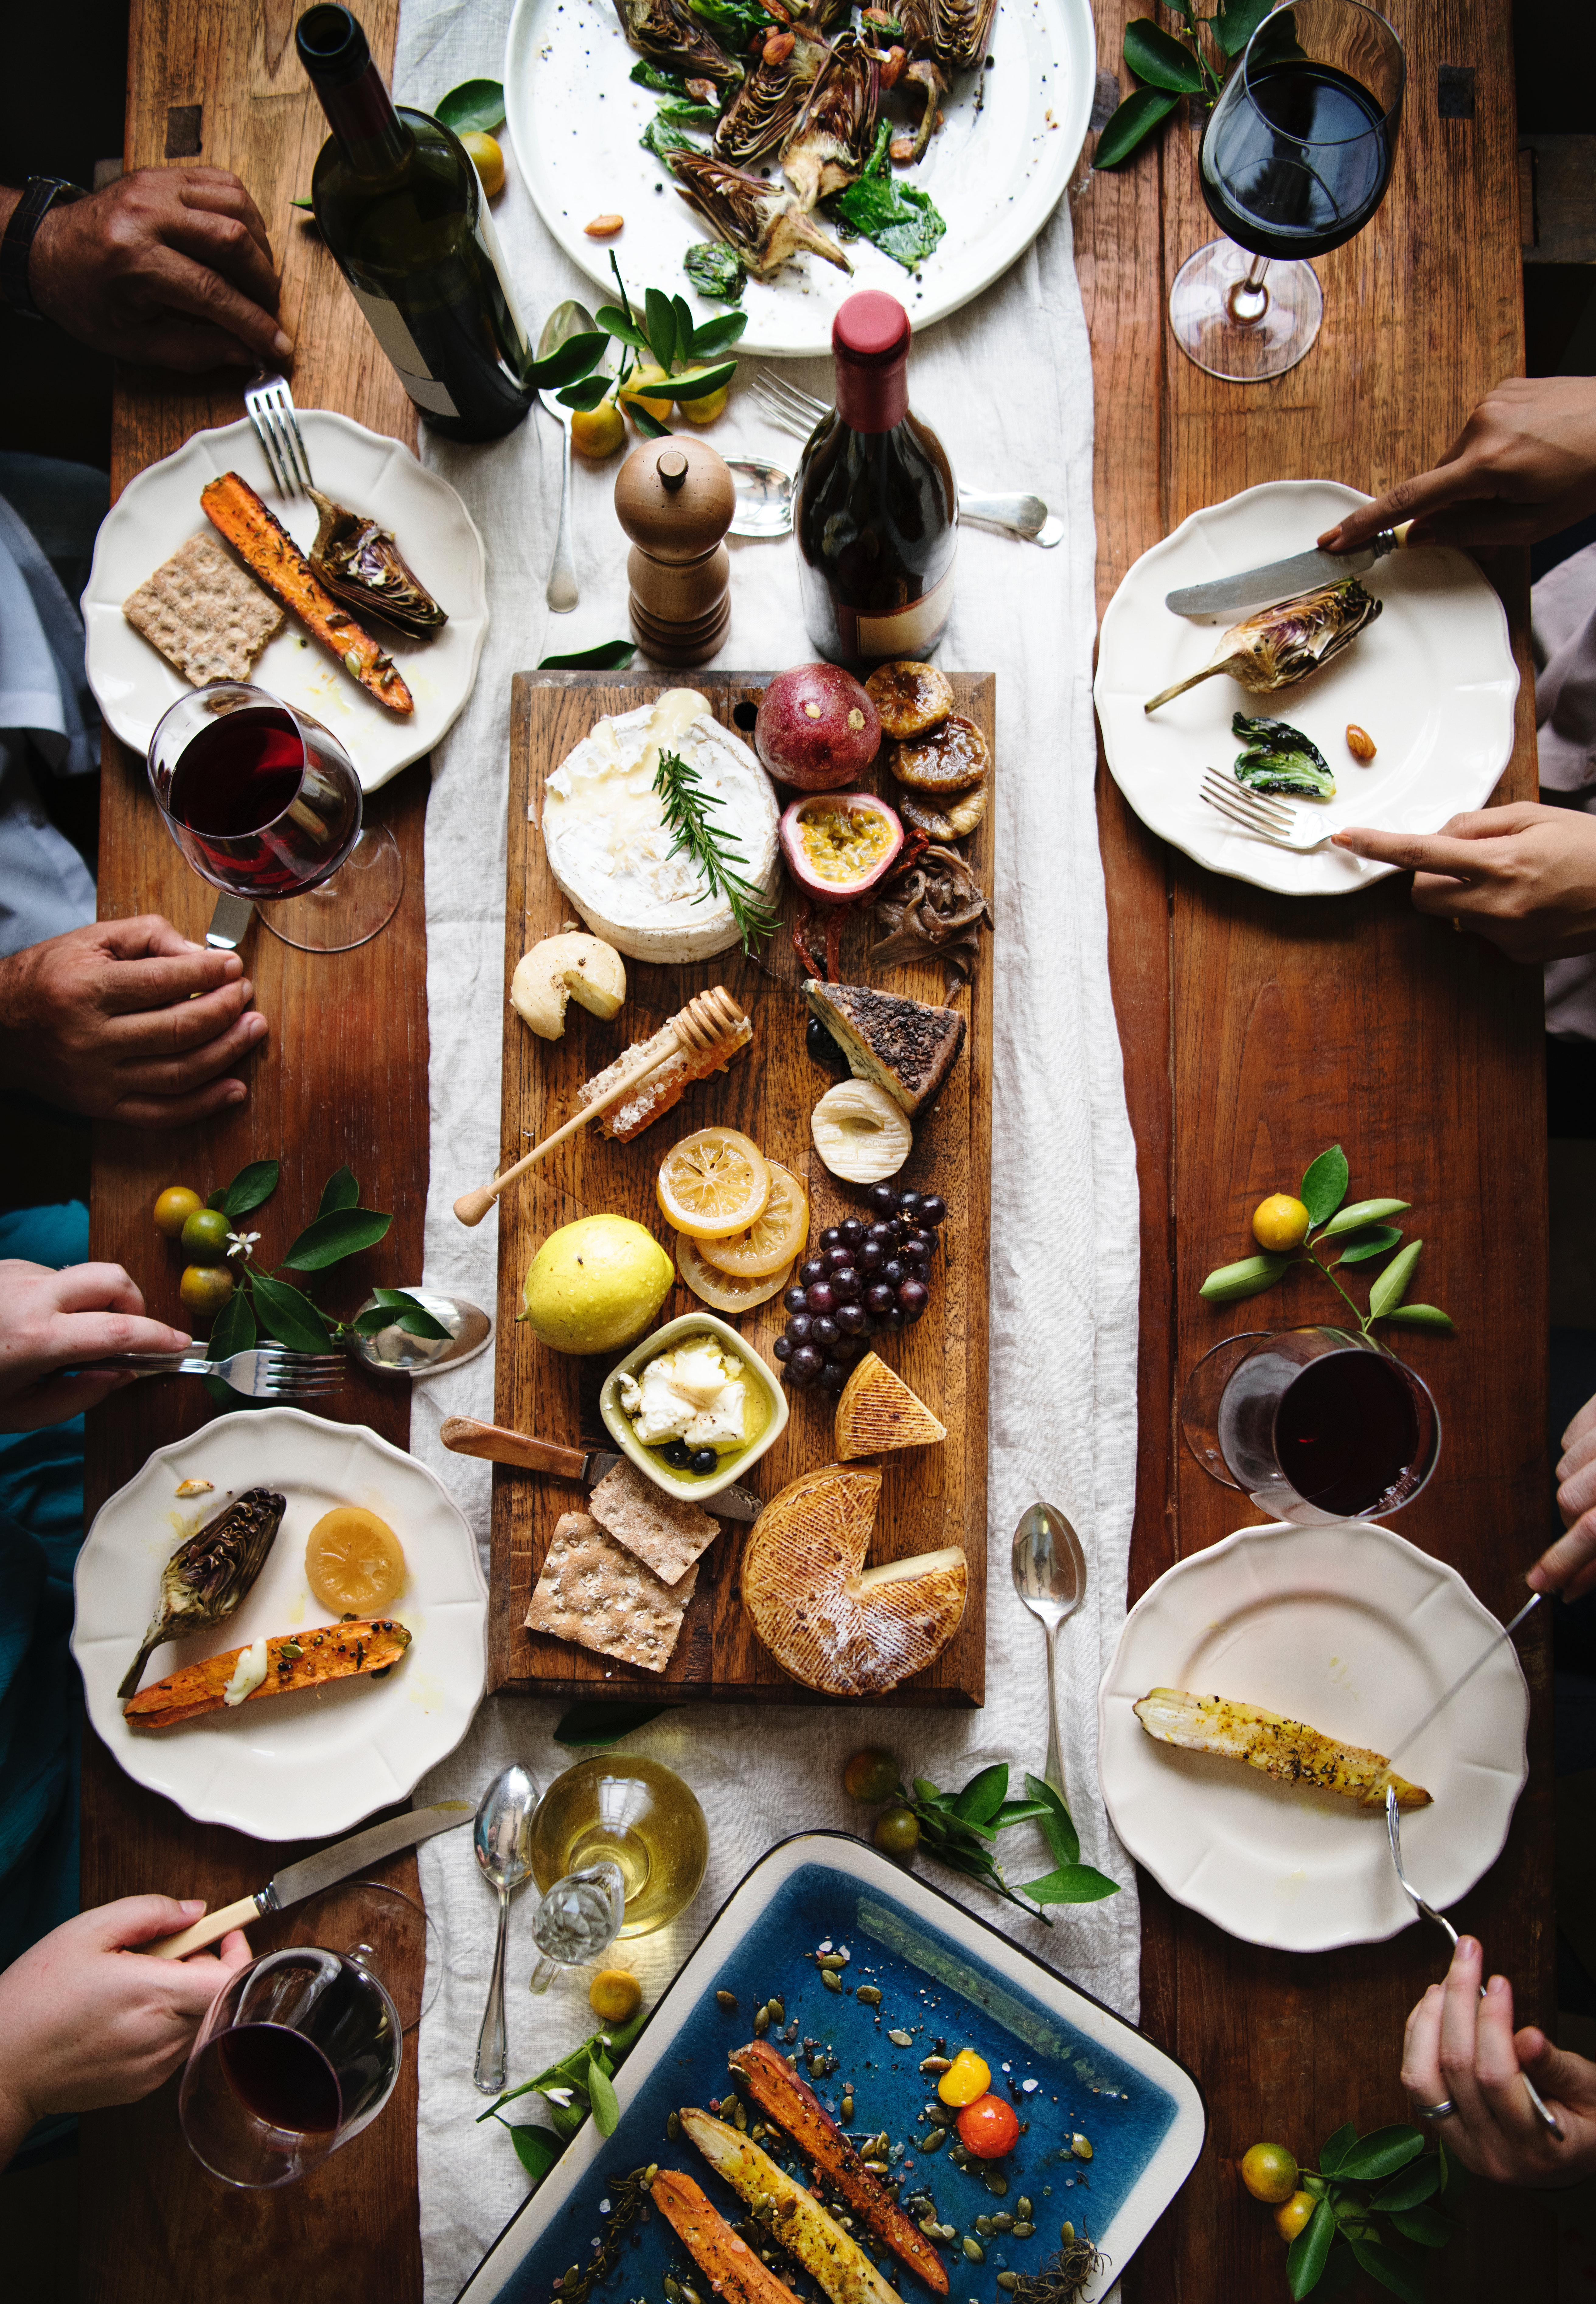 Shot from above, a group of four people share a plate of cheeses, fruit, grilled veggies, and red wine. Photo by rawpixel.com from Pexels.